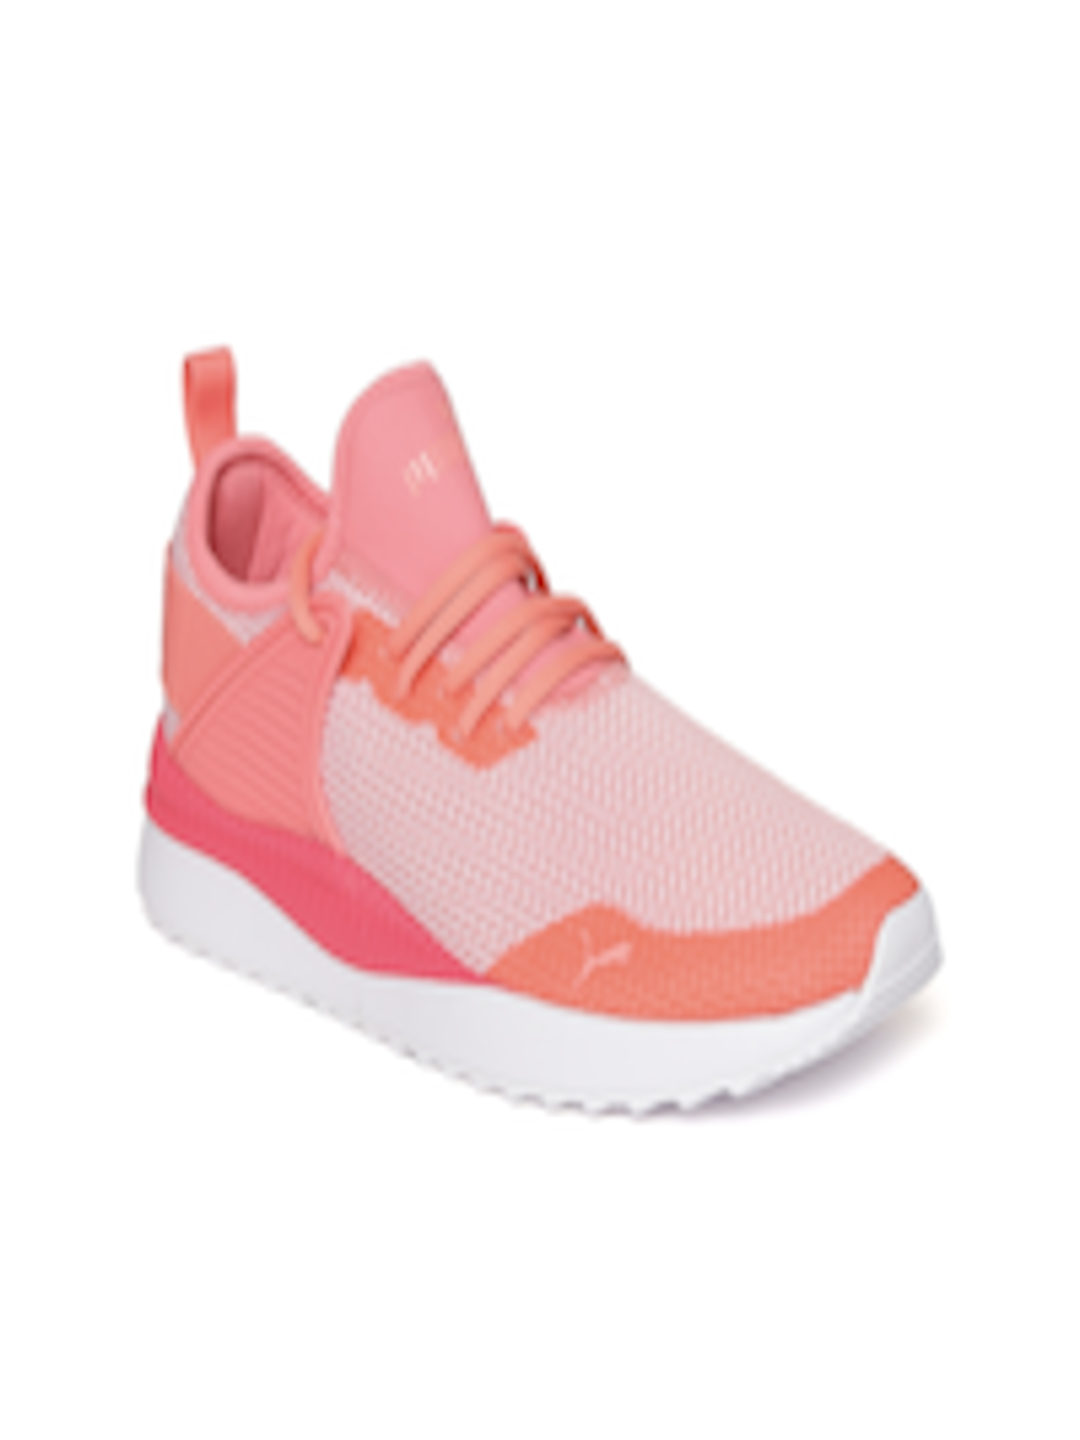 Buy Puma Women Pink   White Pacer Next Cage GK Woven Design Sneakers - Casual  Shoes for Women 2454554  f1094311a